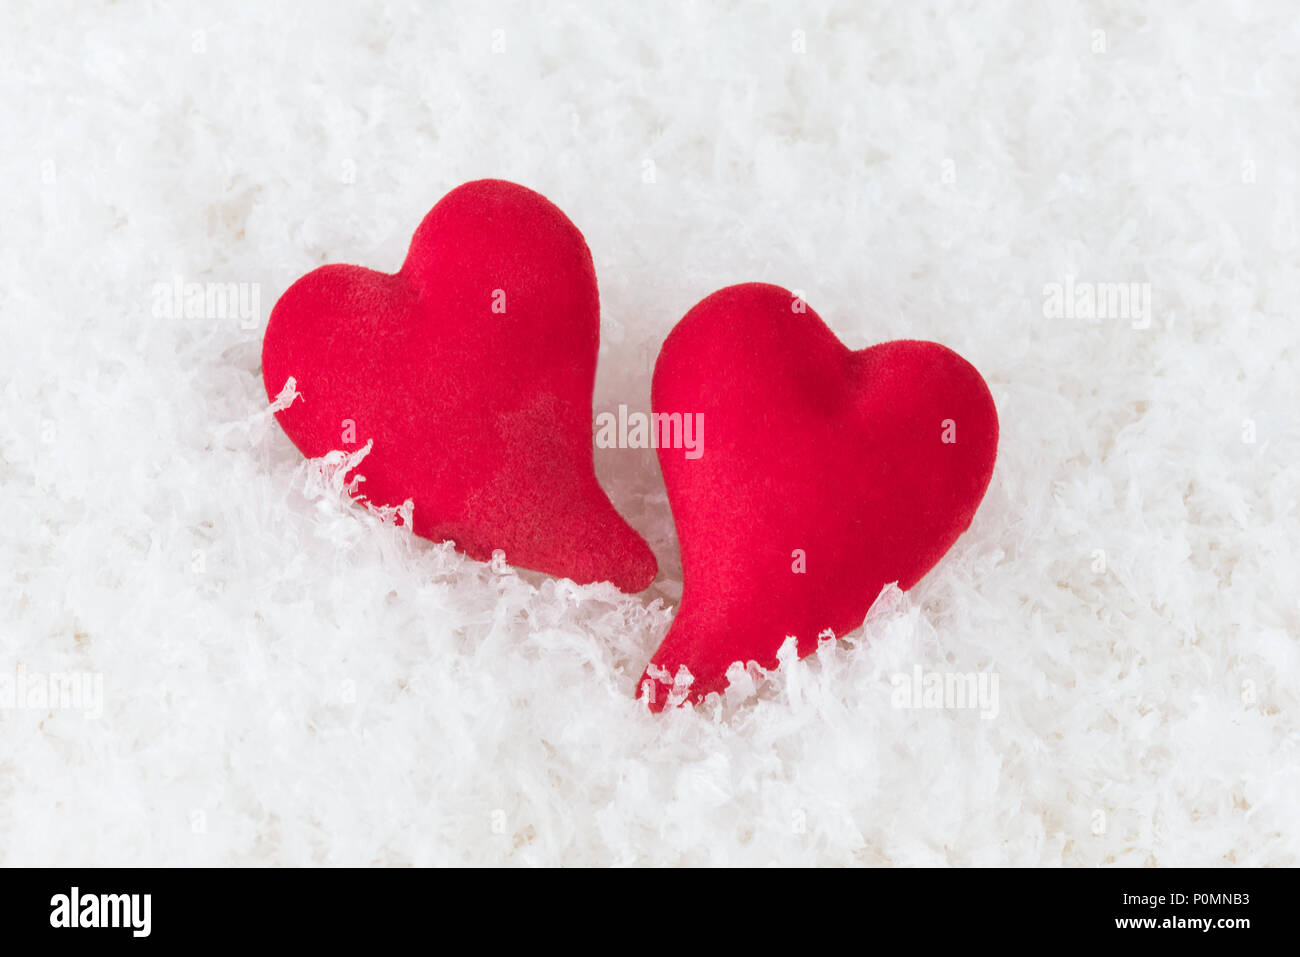 Two Red Hearts Lie On White Puffy Cold Snow Metaphor Of Love